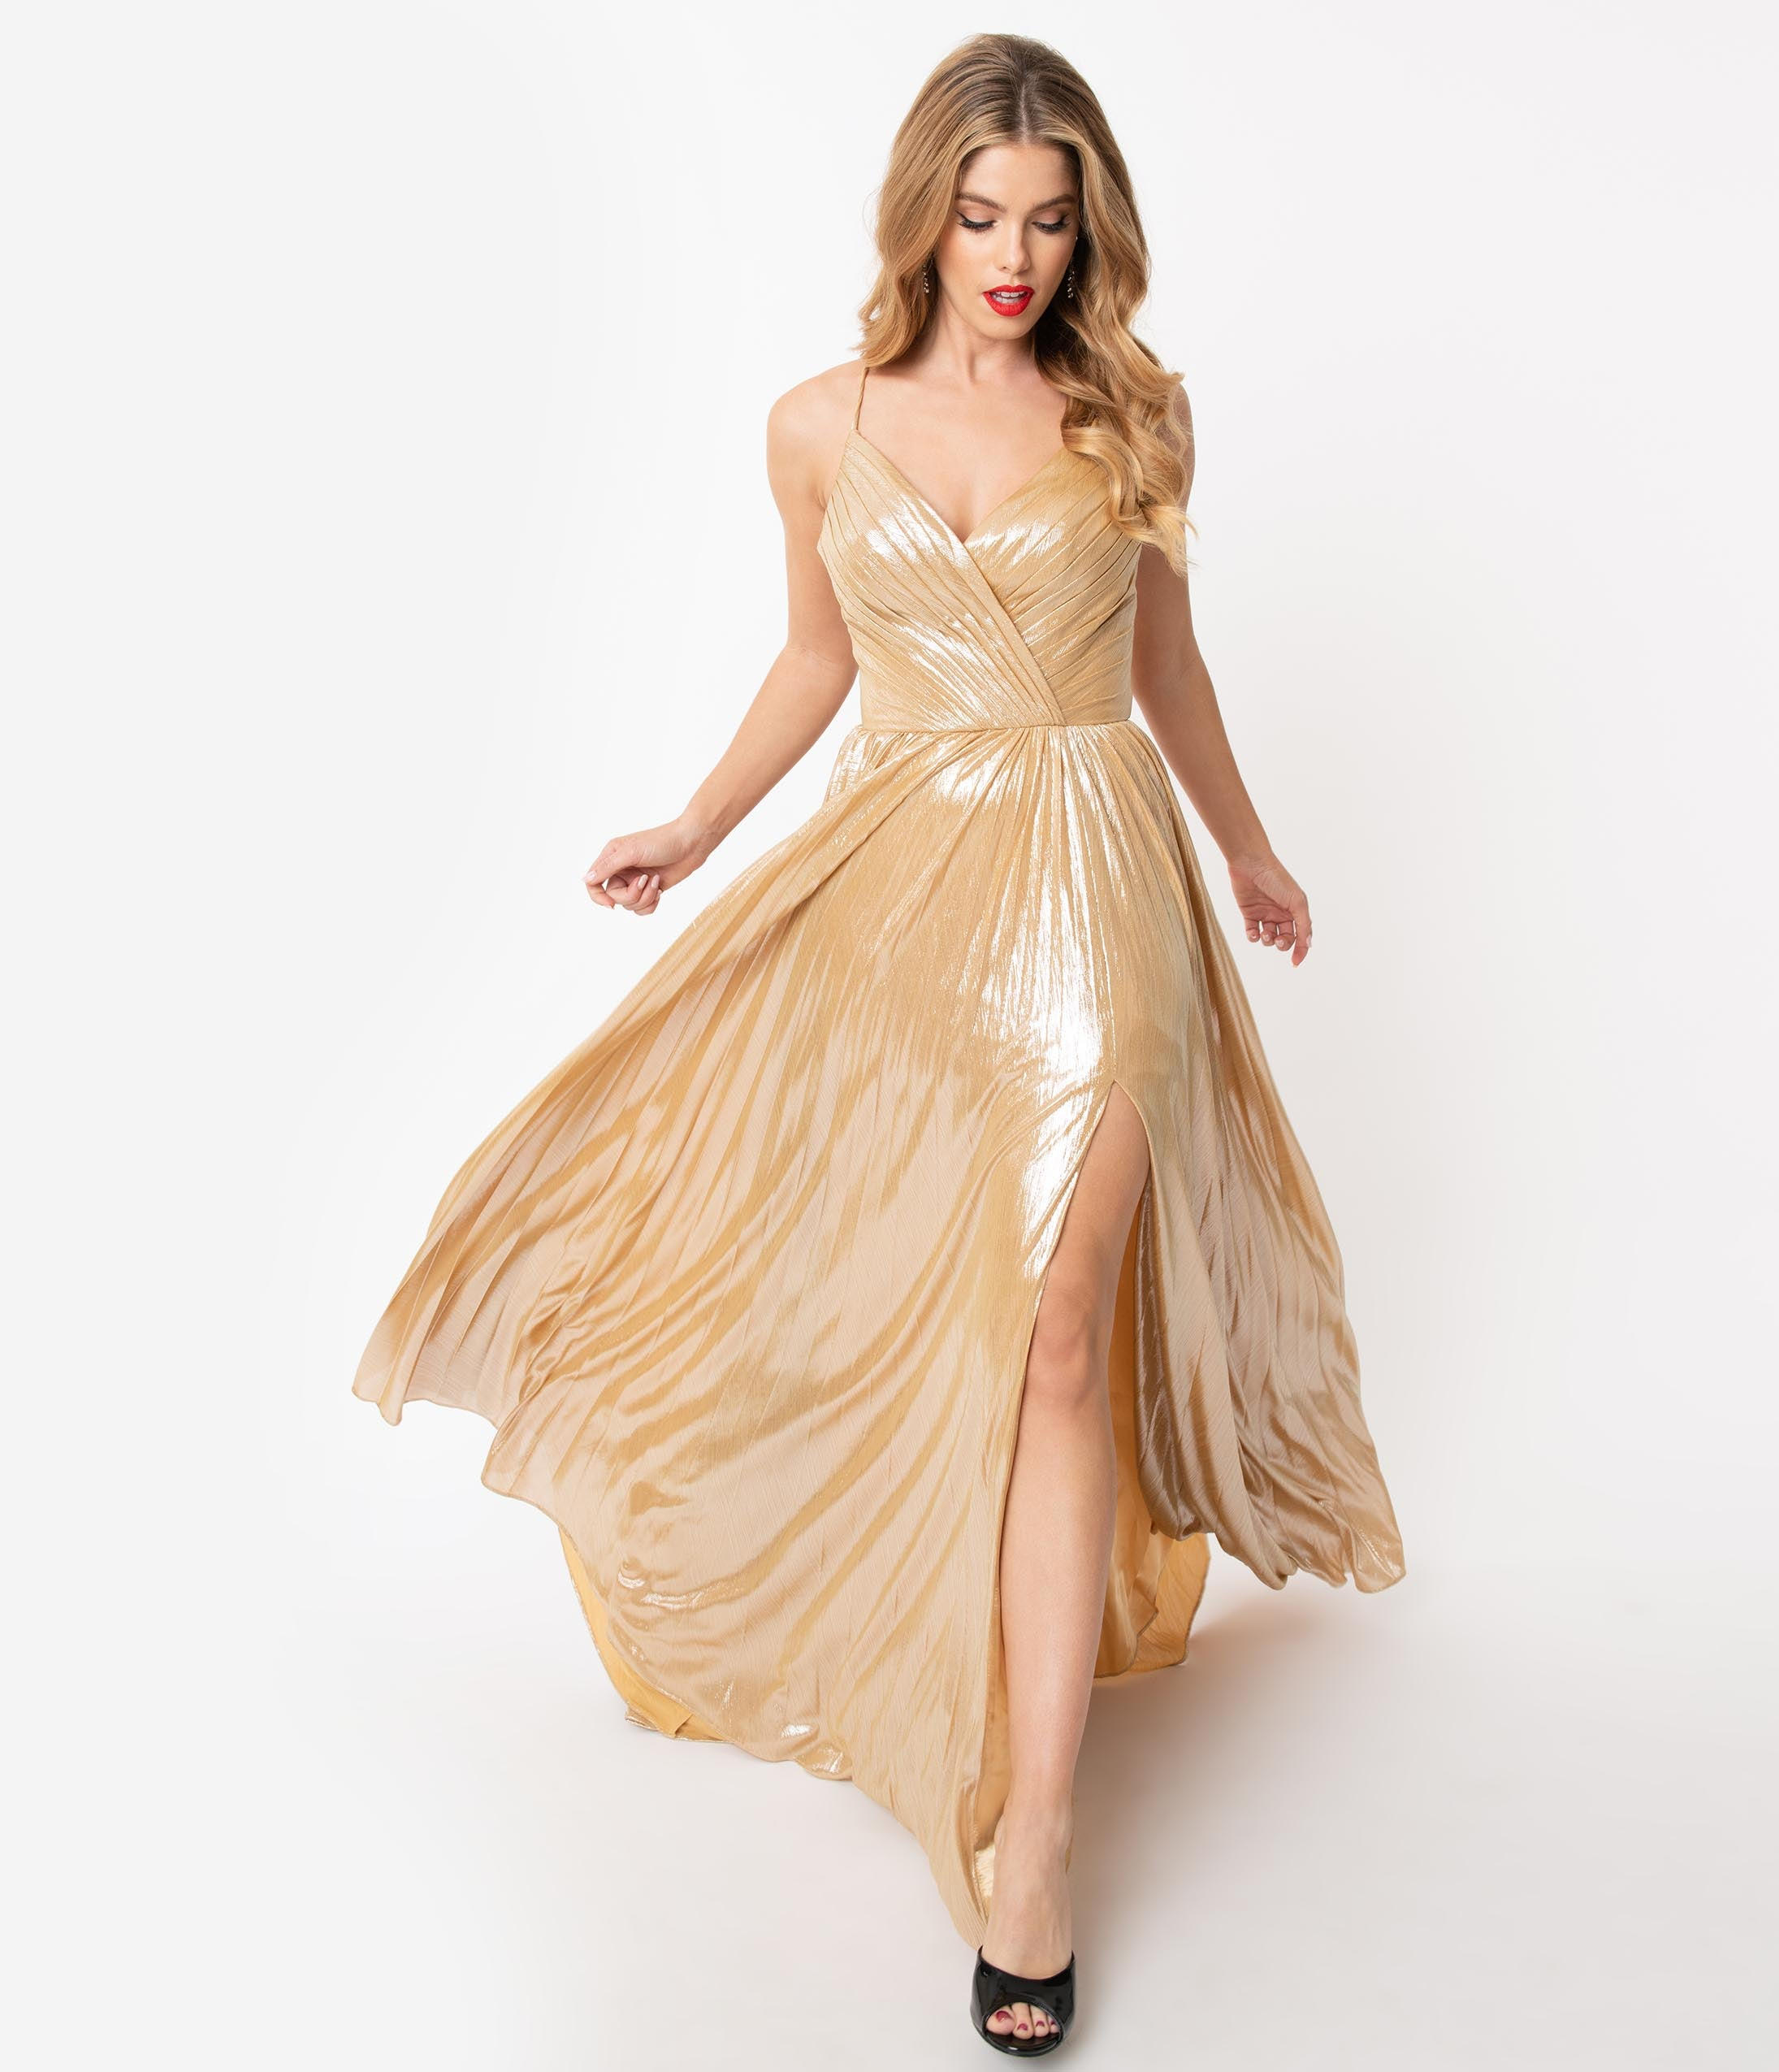 70s Prom, Formal, Evening, Party Dresses Gold Sparkle Pleated Sexy Long Dress $210.00 AT vintagedancer.com